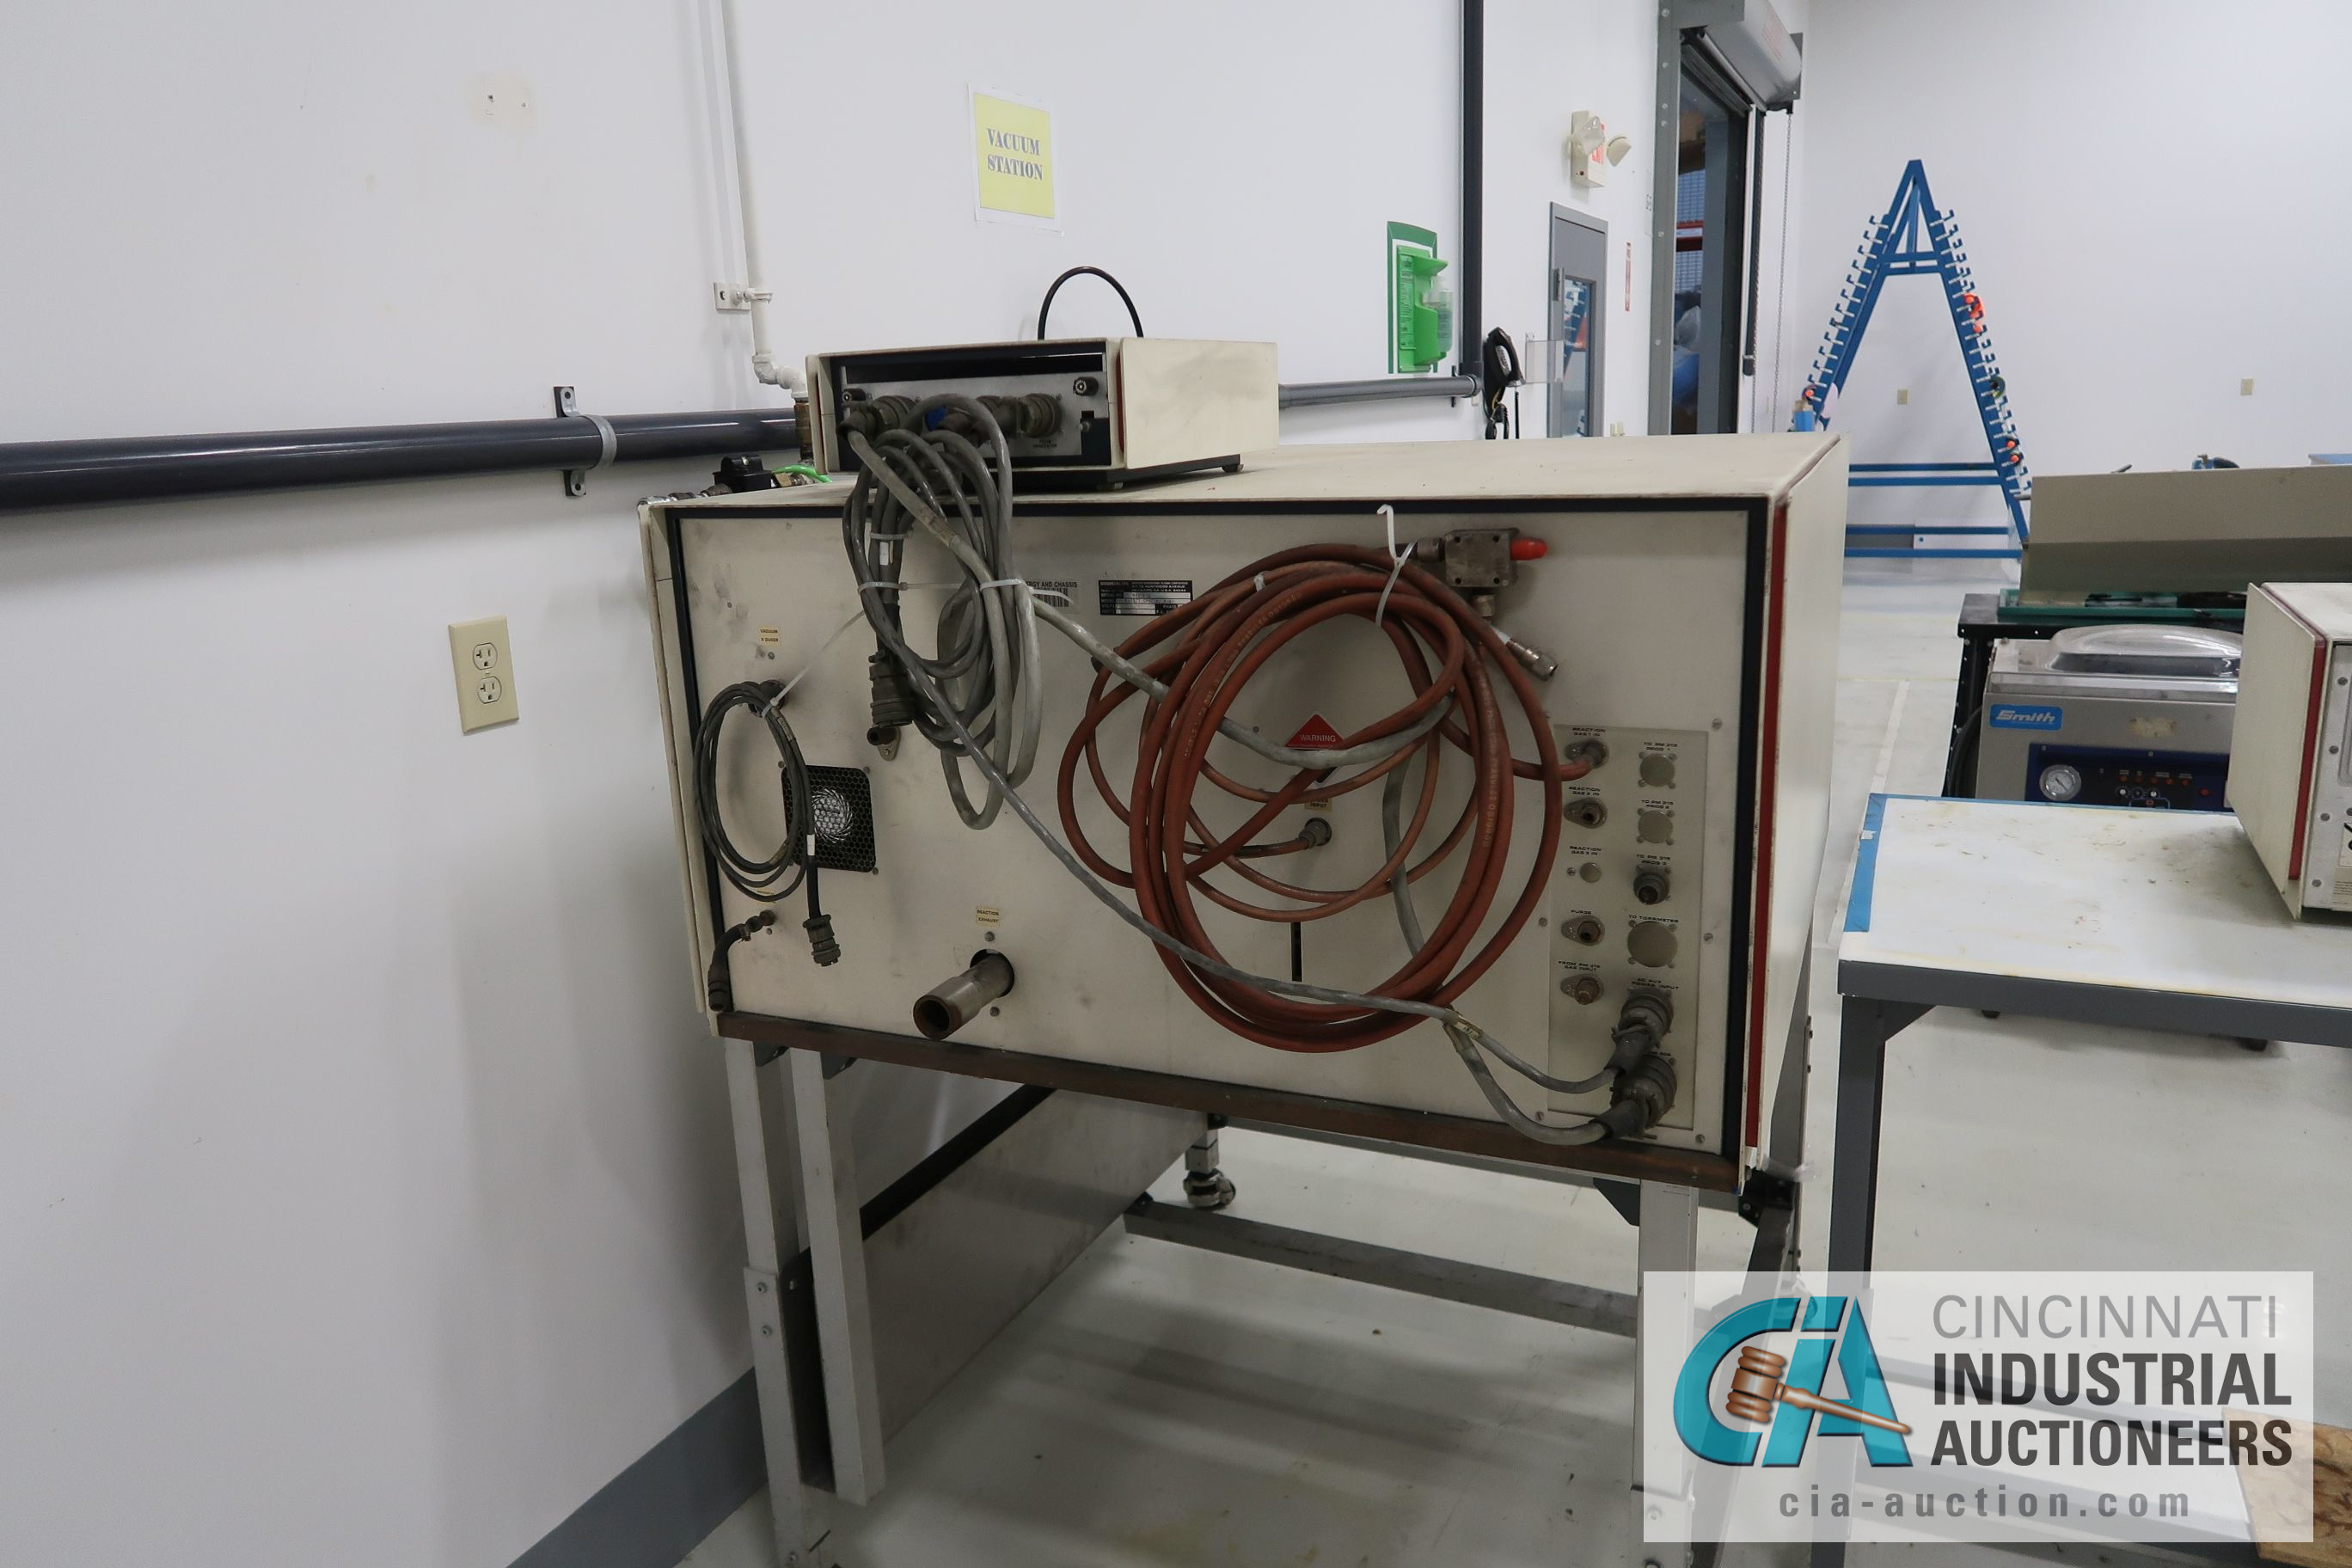 "14"" X 15"" X 2' DEP BRANSON MODEL 415012 PLASTIC PLASMA ADHESION SURFACE TREATER; S/N M961820, WITH - Image 5 of 6"